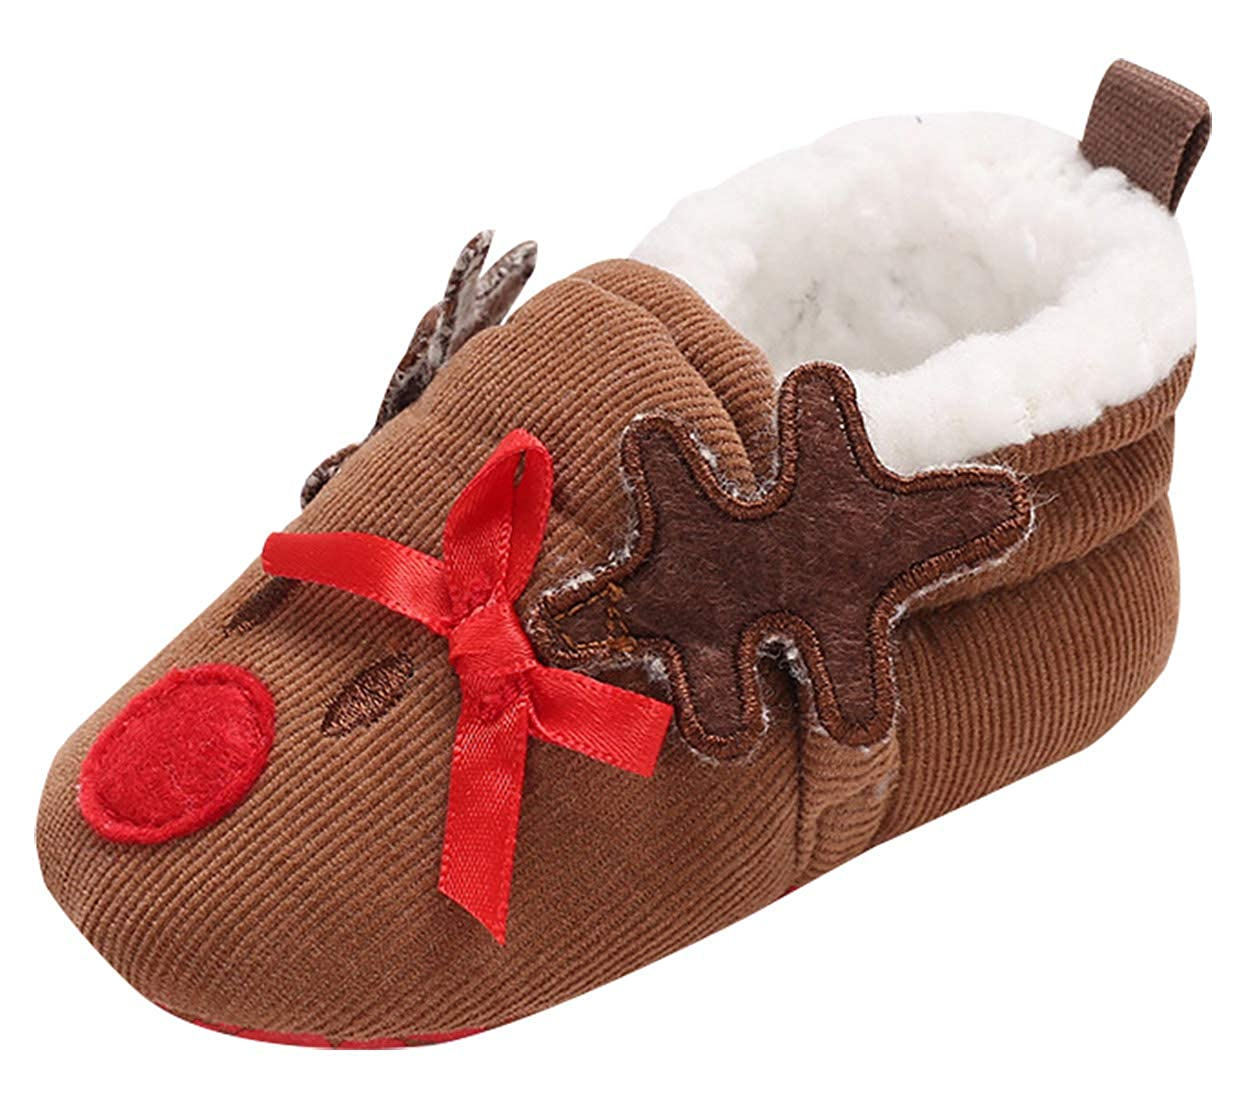 HAPPYCHERRY Christmas Baby Shoes Unisex Baby Boys Girls Winter Warm Shoes Newborns Lovely Shoes First Walkers Baby Shoes Booty